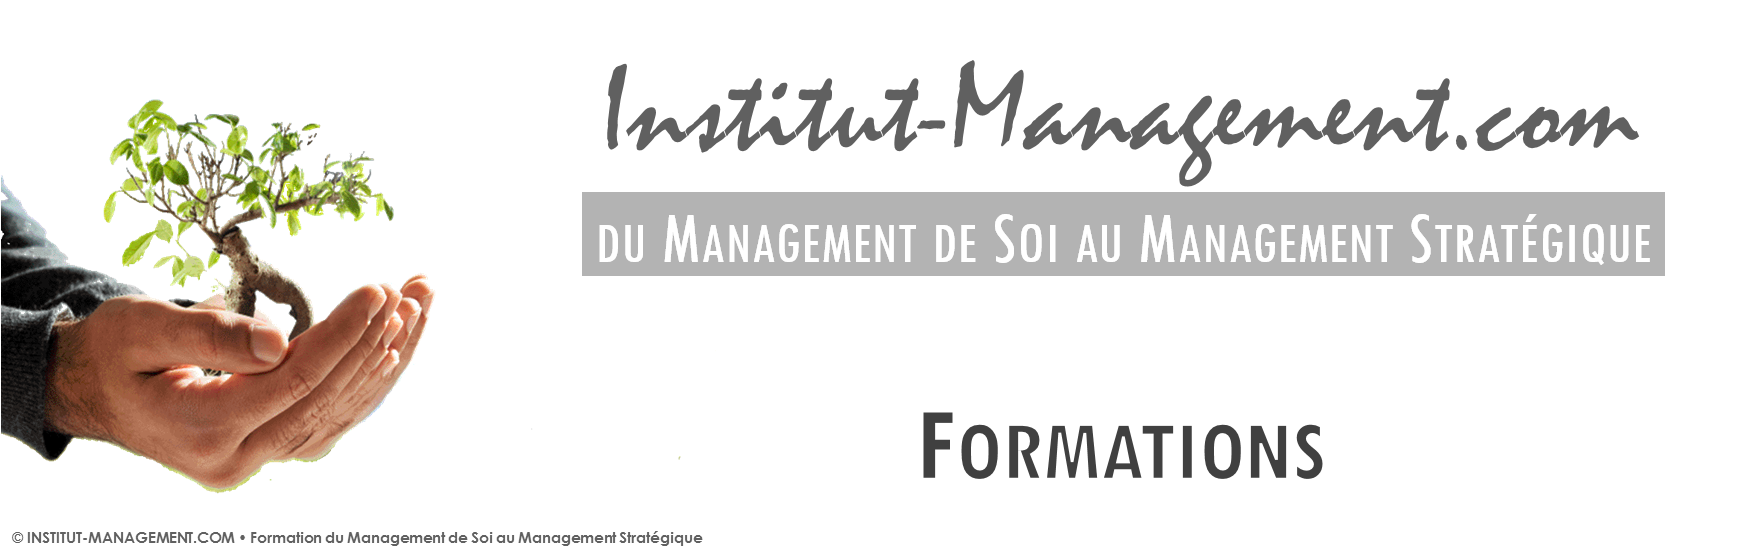 Institut-Management - Formations